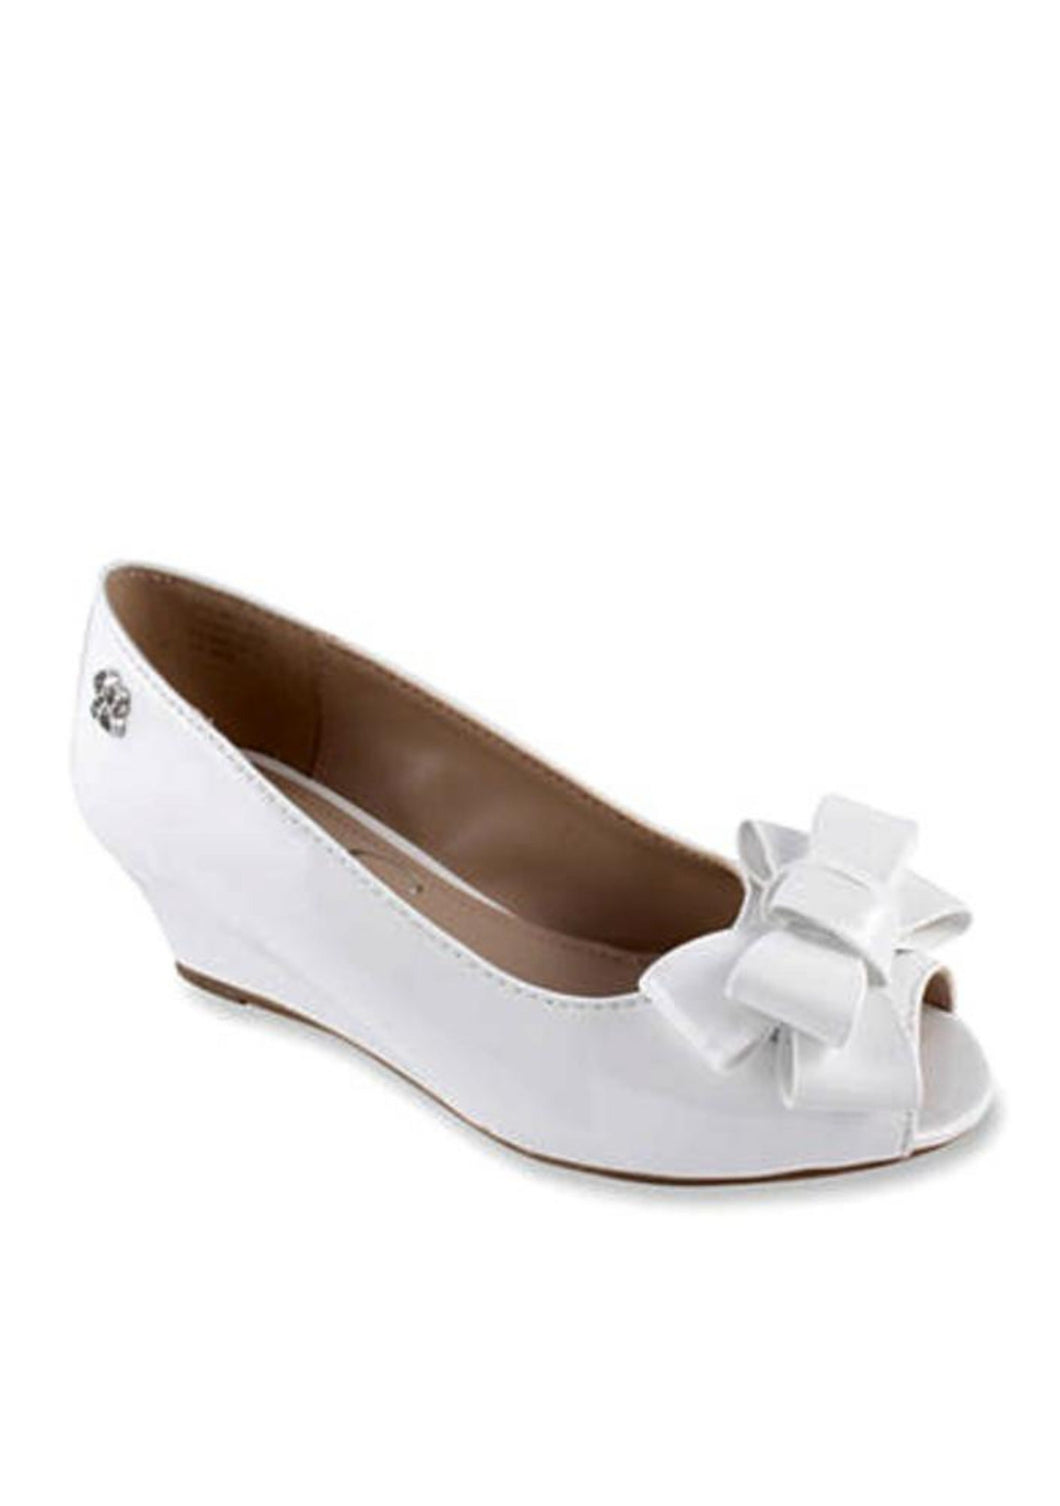 Jessica Simpson White Gayla Shoes | Honeypiekids